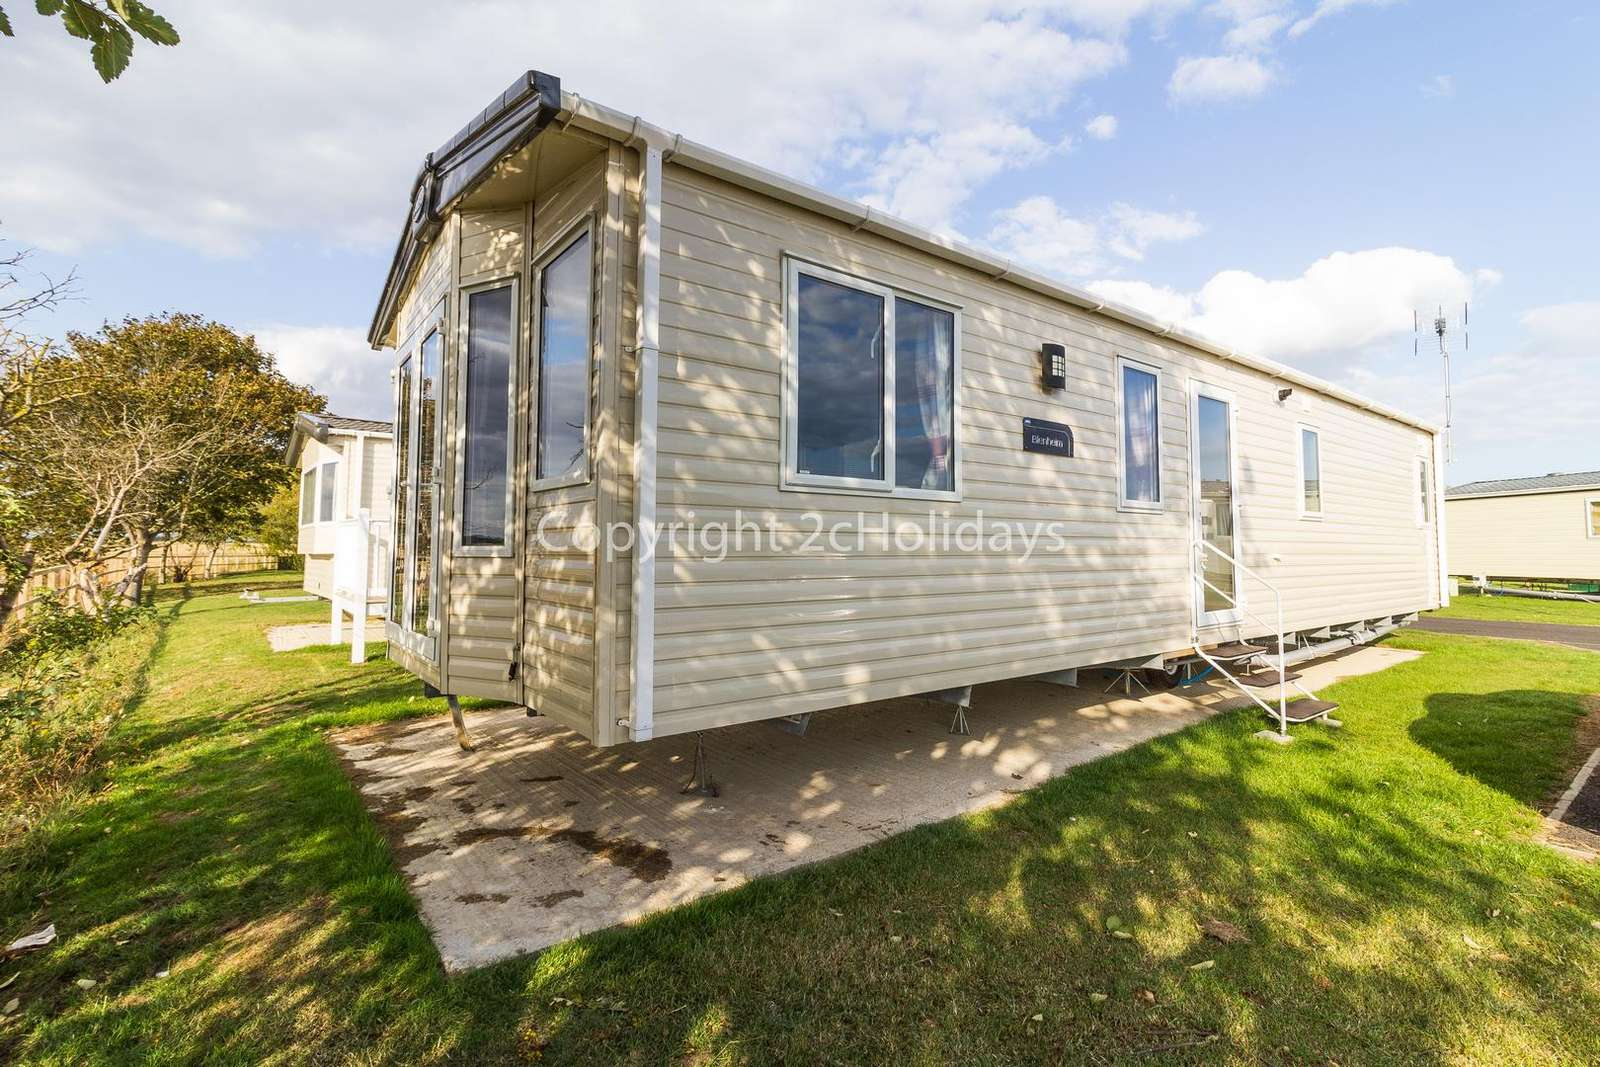 Luxury mobile home with a modern design throughout!